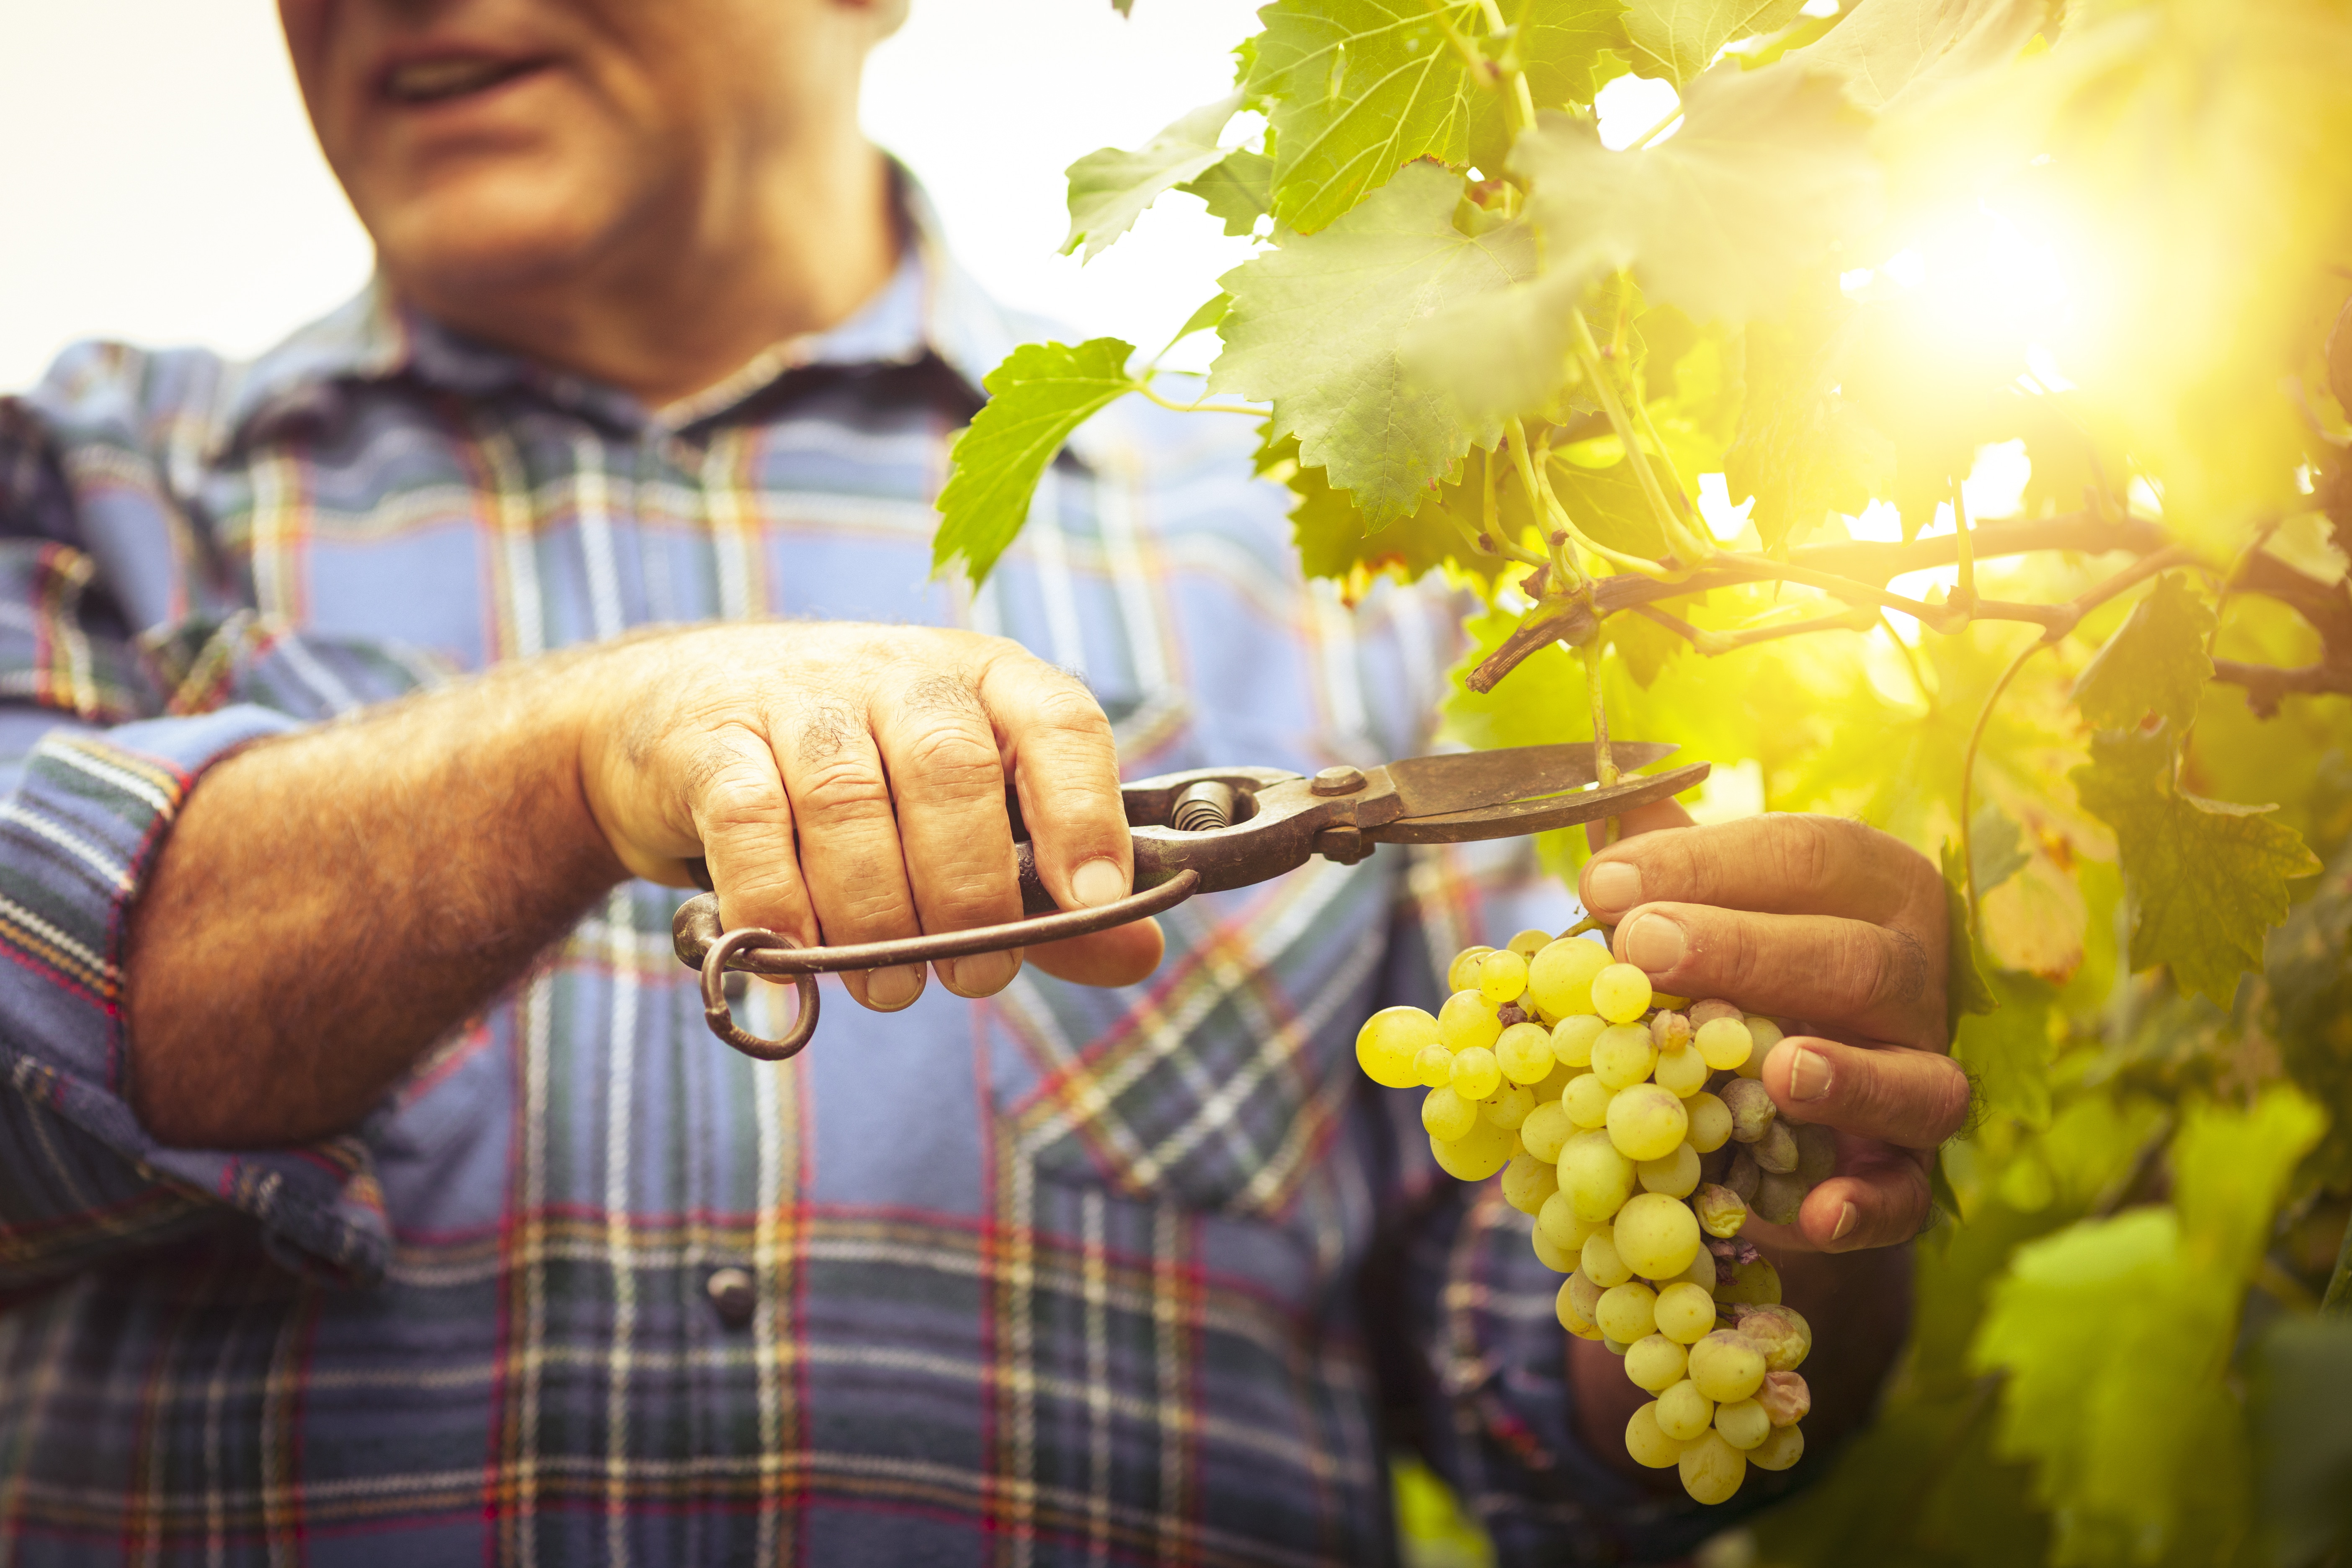 man cutting grapes